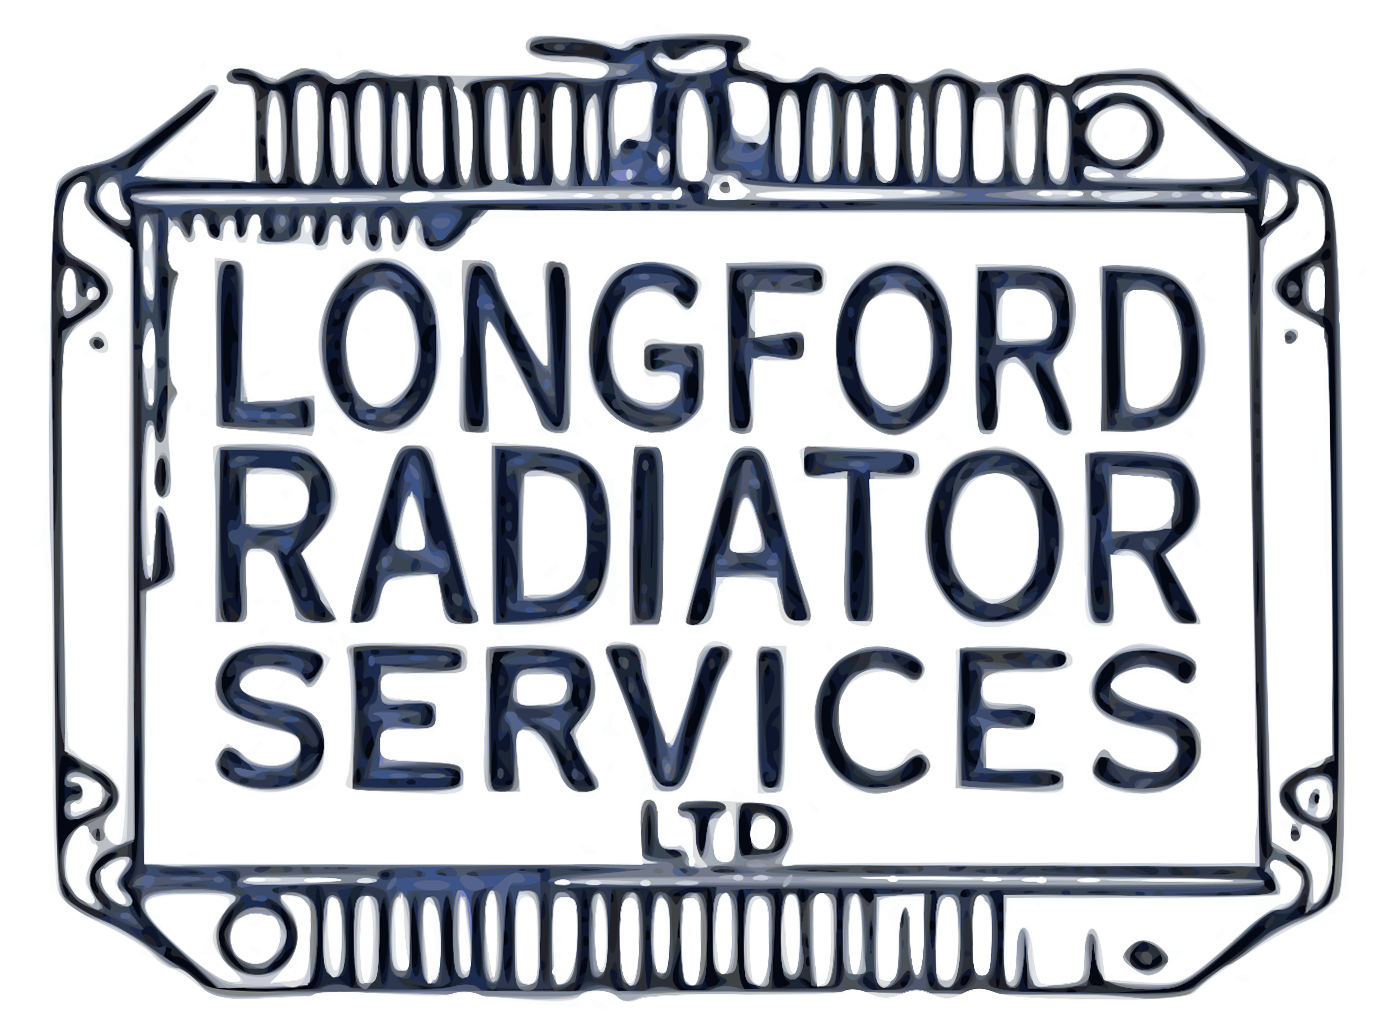 The Longford Radiator Services Ltd logo